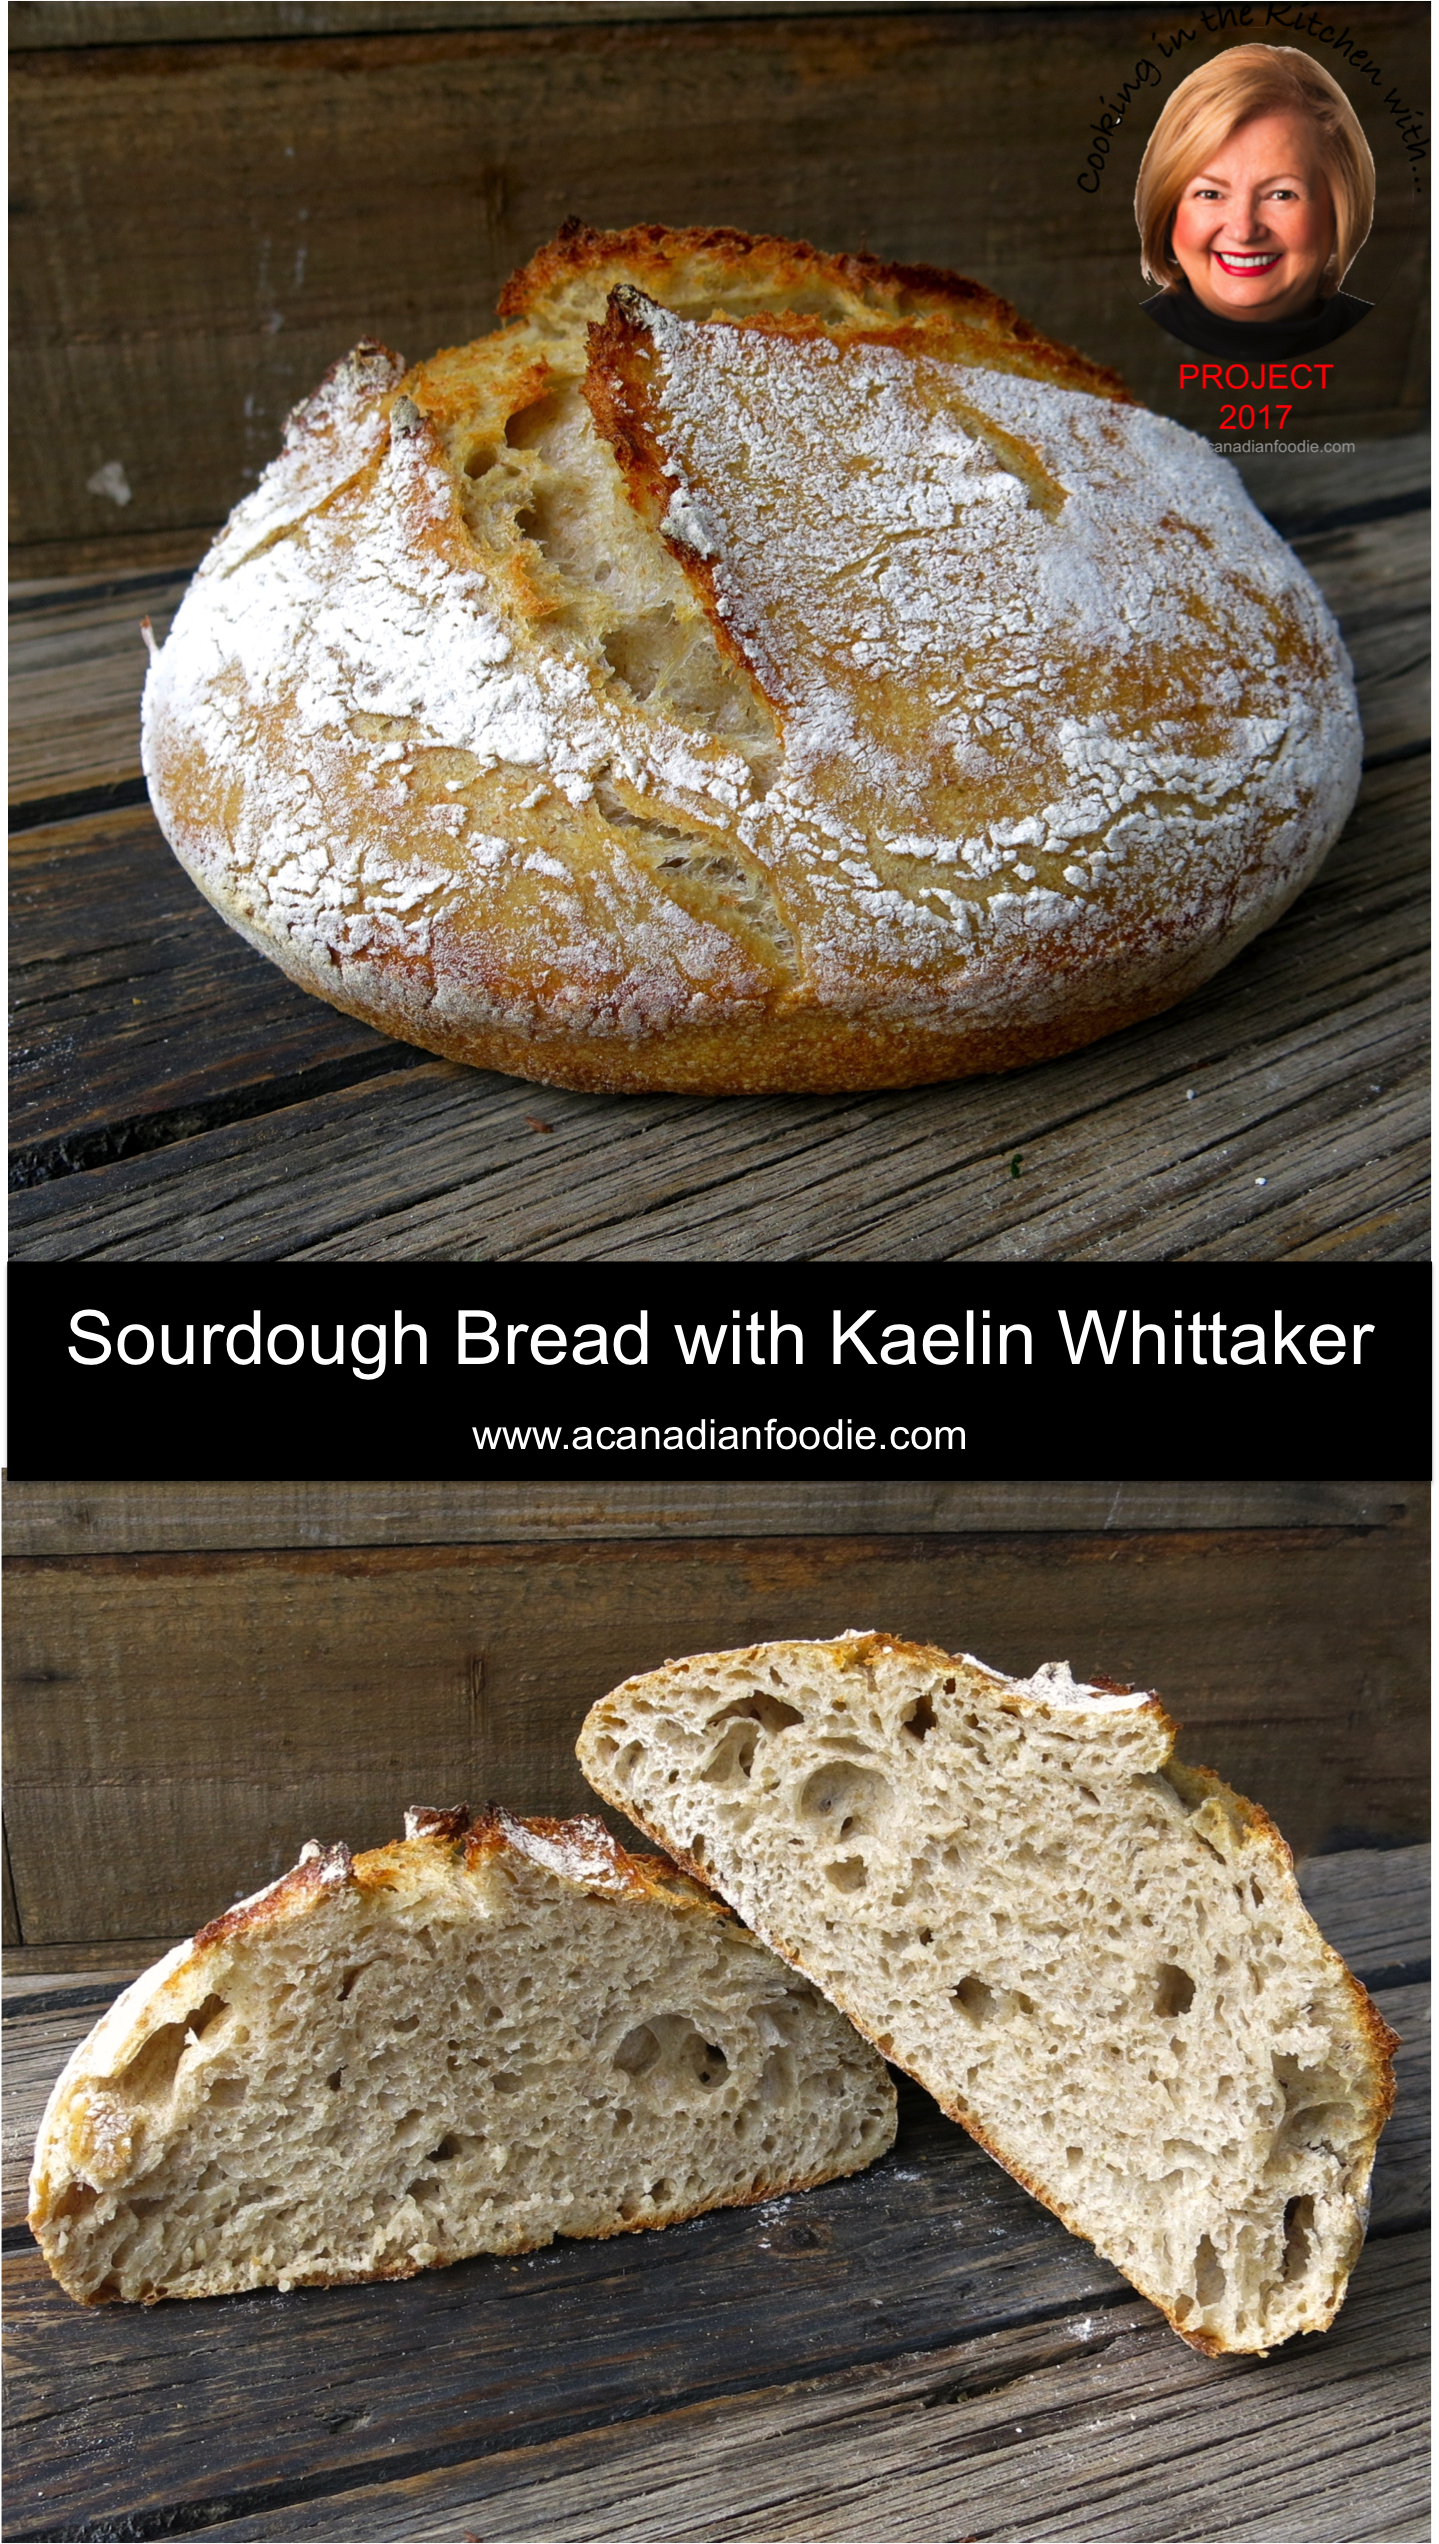 How to make great Canadian Prairie Sourdough Bread in Alberta with Kaelin Whittaker of The Ruby Apron, founder of Real Bread Alberta is a real eye-opener! #ACFValerieCookingWithYou! #realbreadAB #sourdoughbread